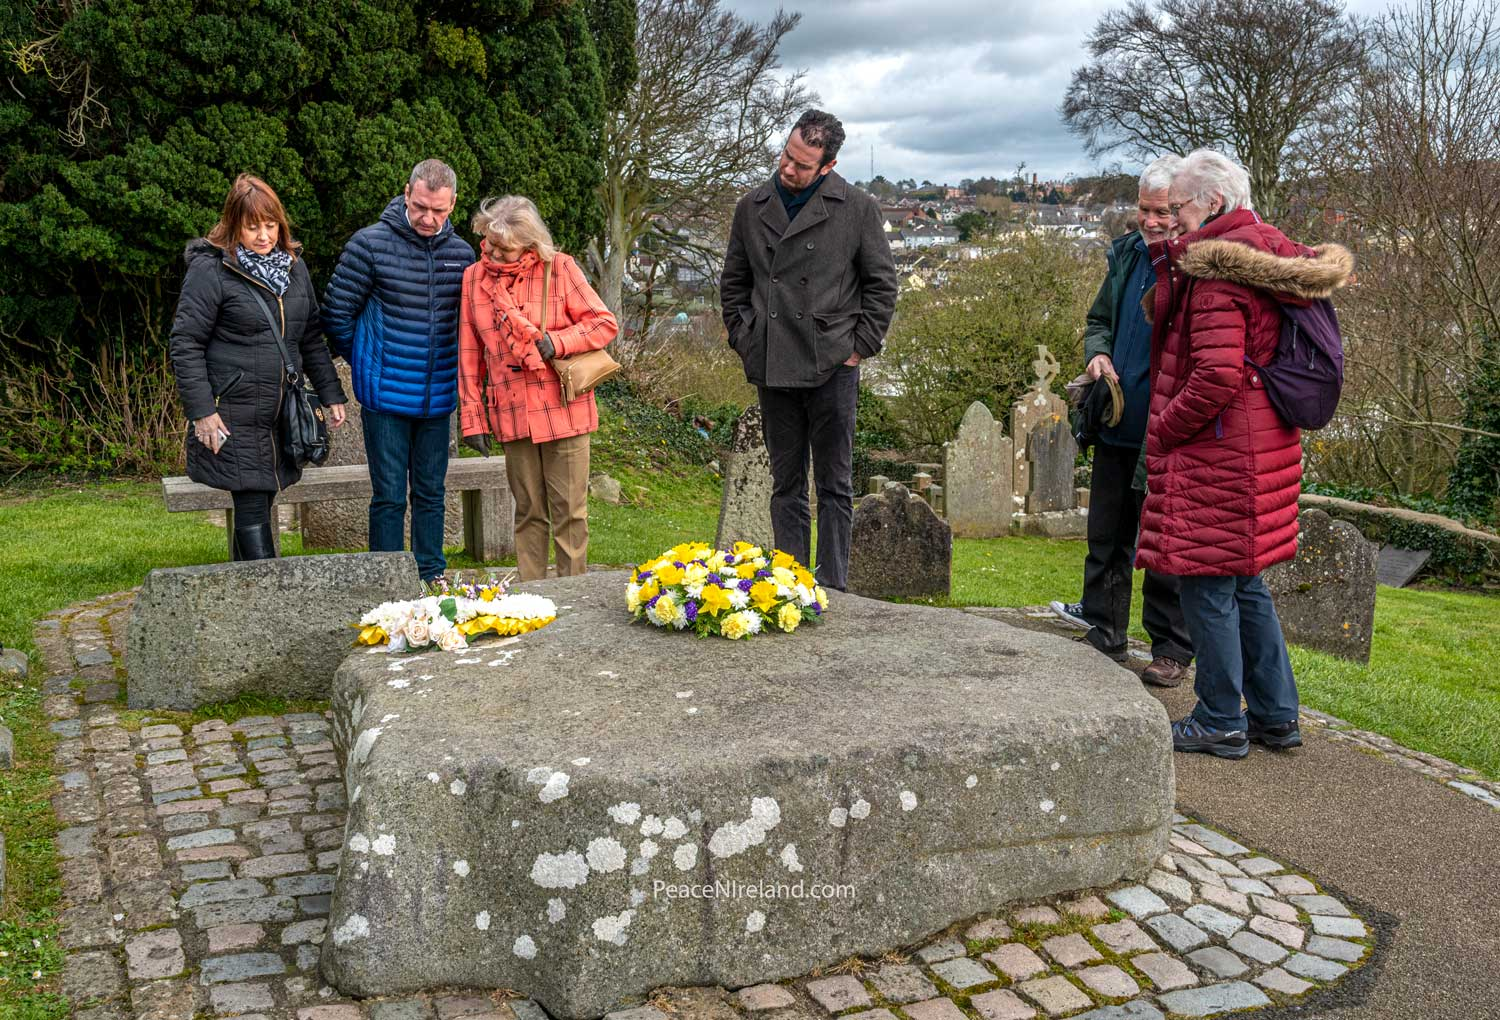 St Patrick's day 2019 - the last year the public could visit his grave before COVID restrictions of 2020 and 2021